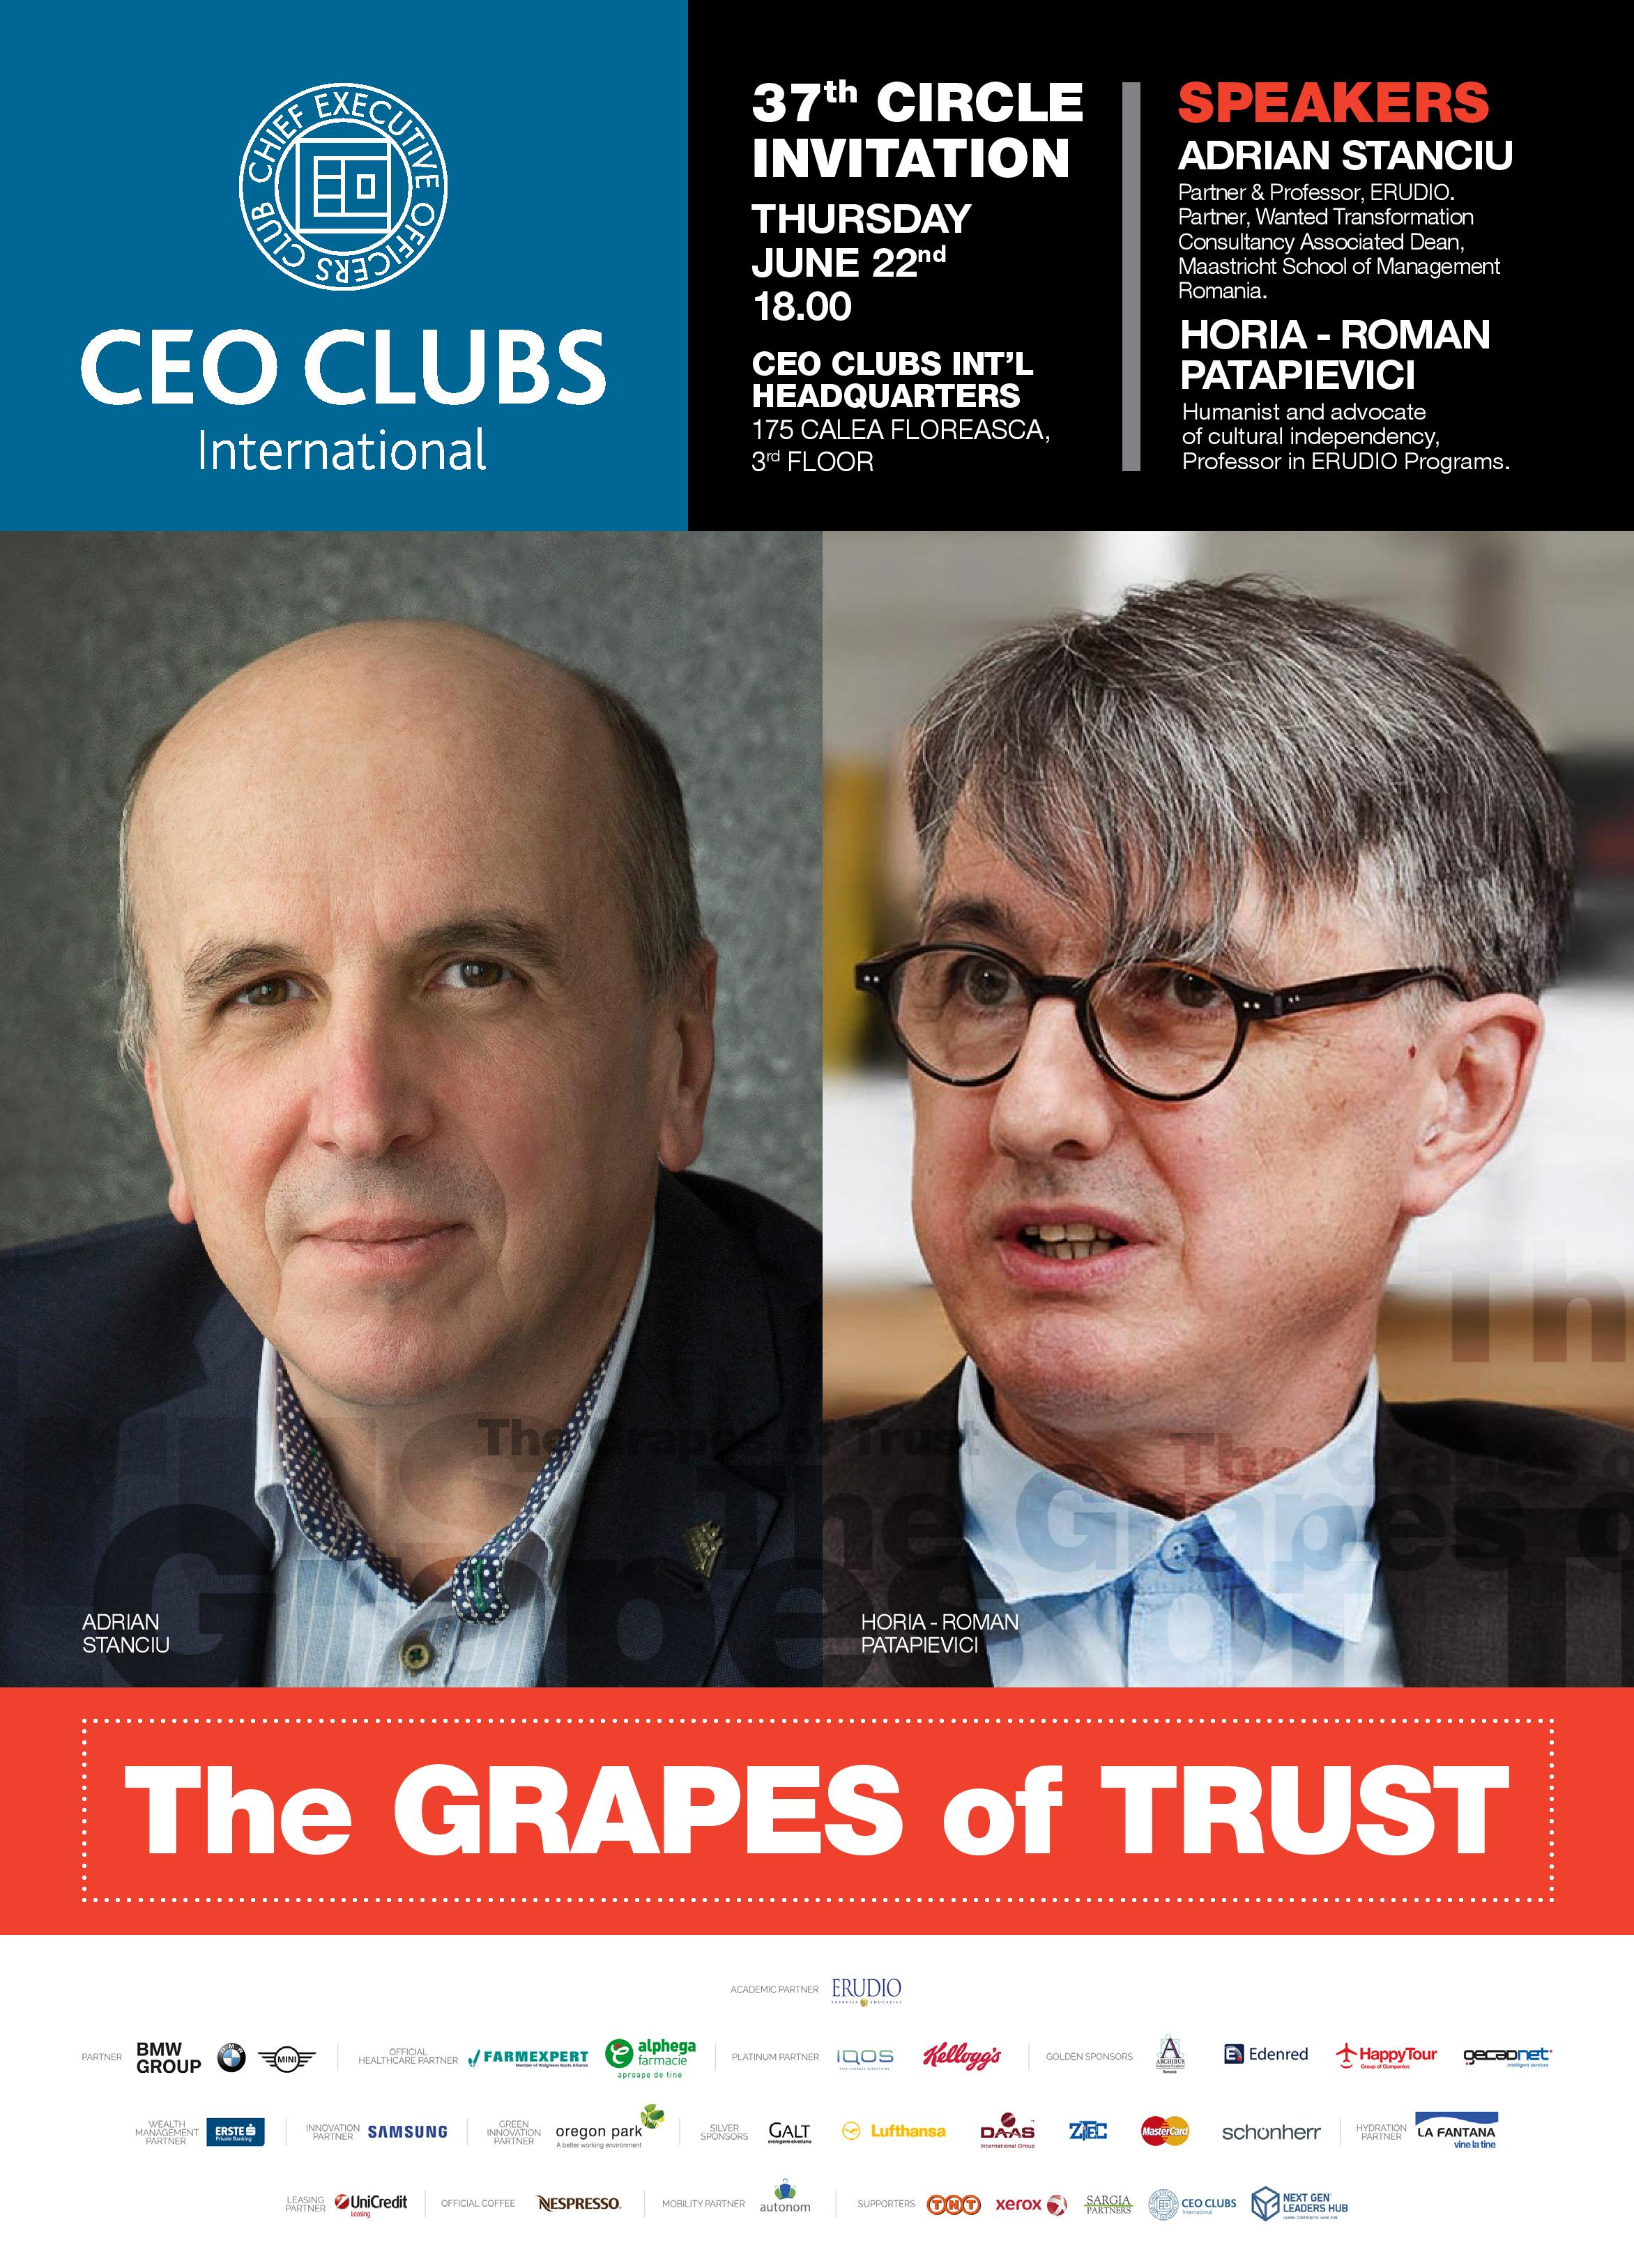 The 37th Circle: The Grapes of Trust